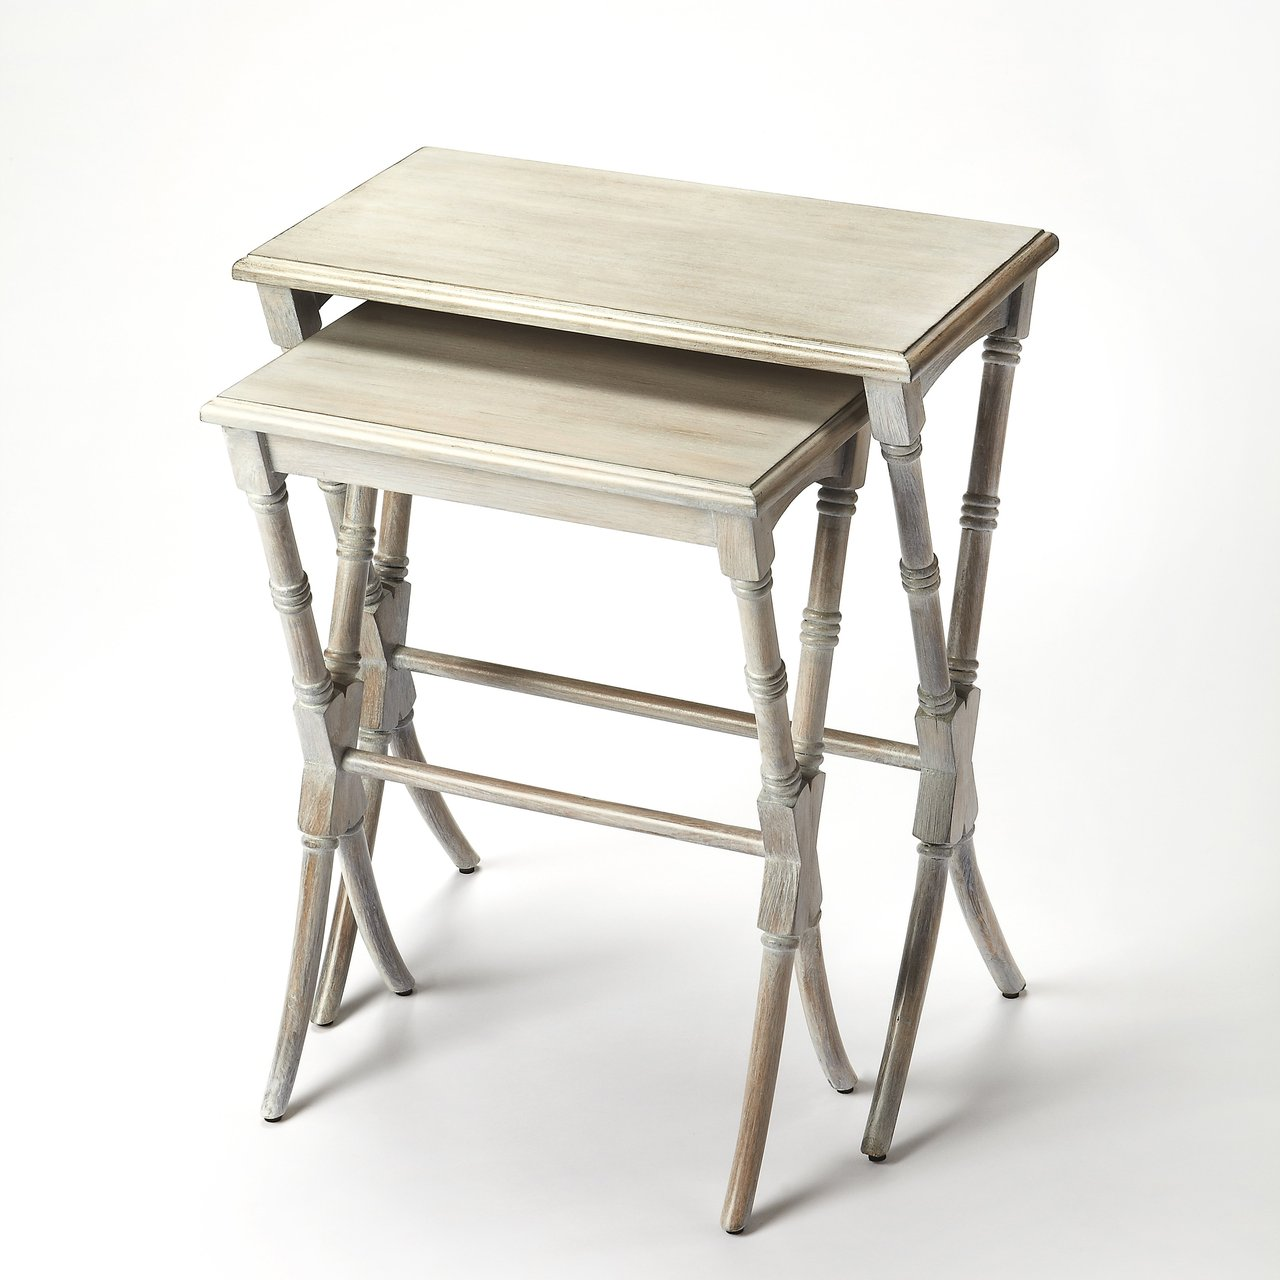 Arabella Driftwood Nesting Tables